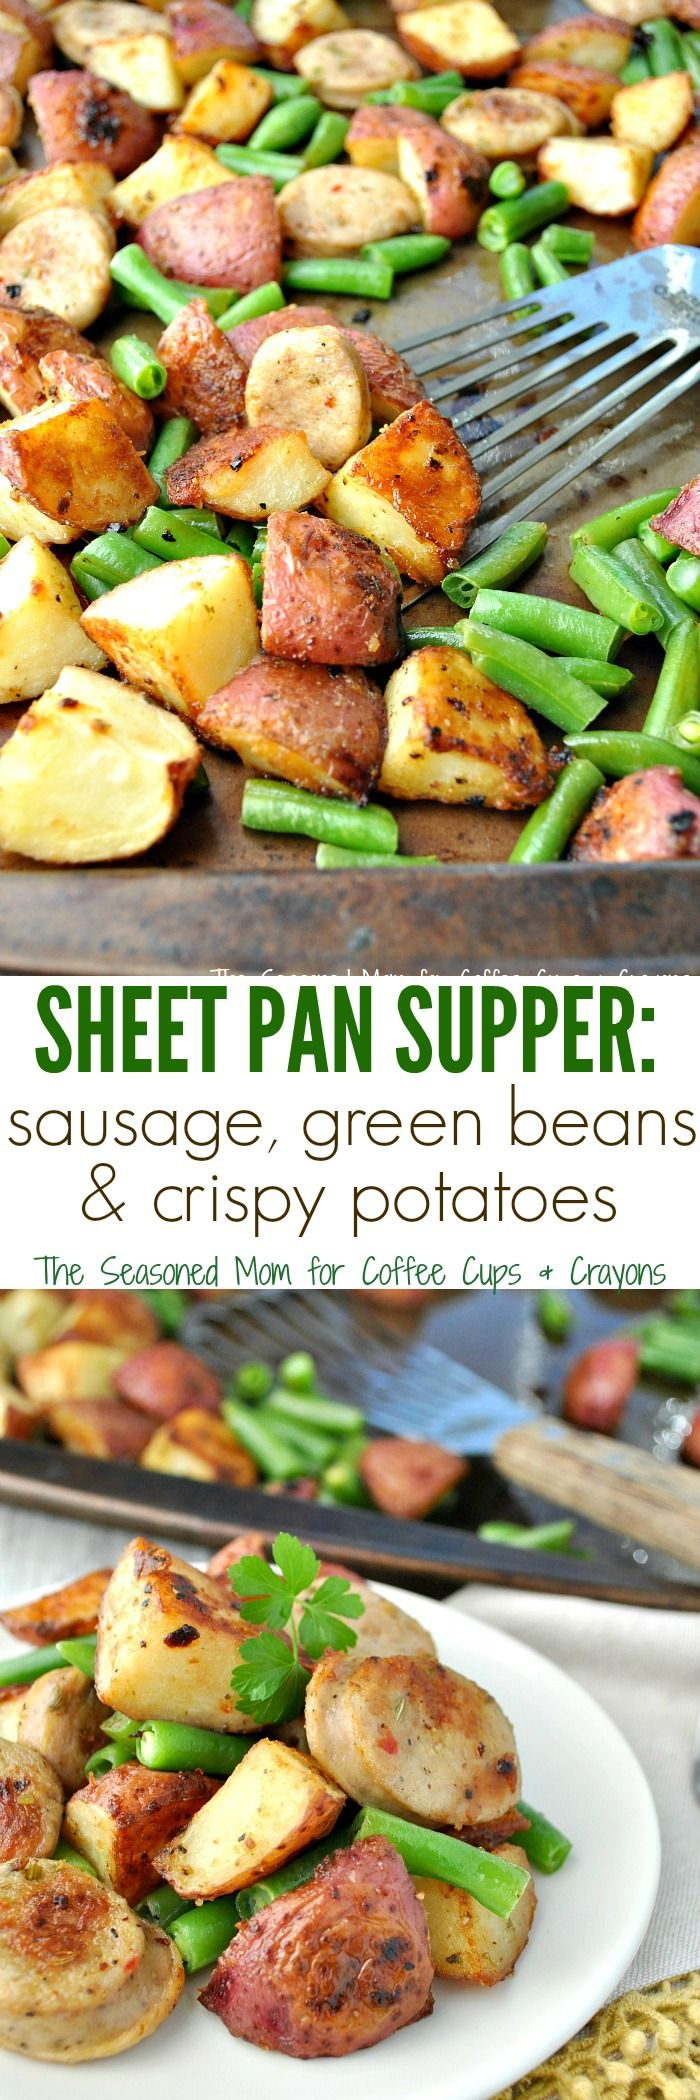 This Sheet Pan Supper is loaded with perfectly-seasoned and crispy potatoes, sausage, and green beans for an entire meal that cooks on one tray -- with very little prep and very little cleanup!